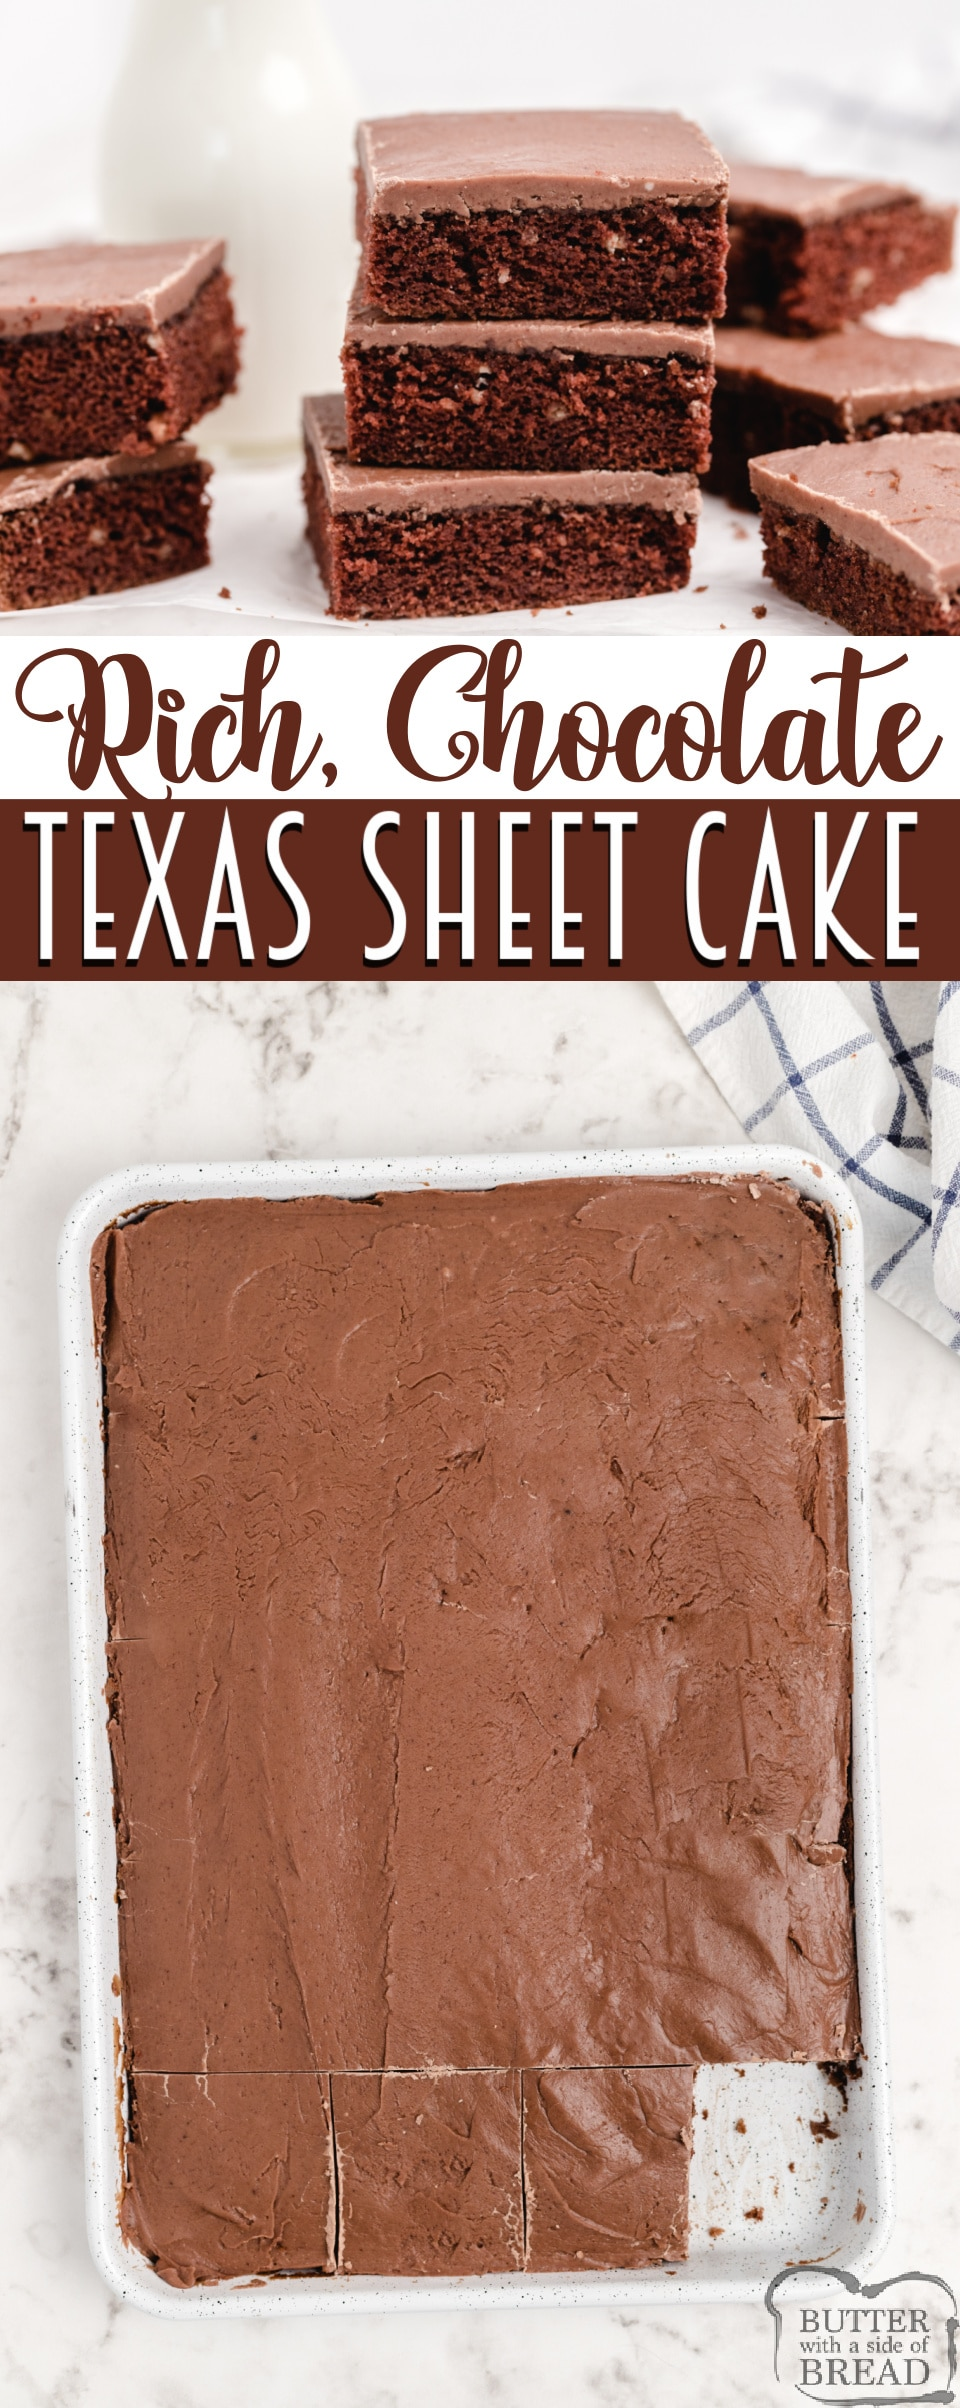 Texas Sheet Cake is the perfect chocolate cake recipe made from scratch. Delicious chocolate cake made in a jelly roll pan and topped with a warm, homemade chocolate frosting.